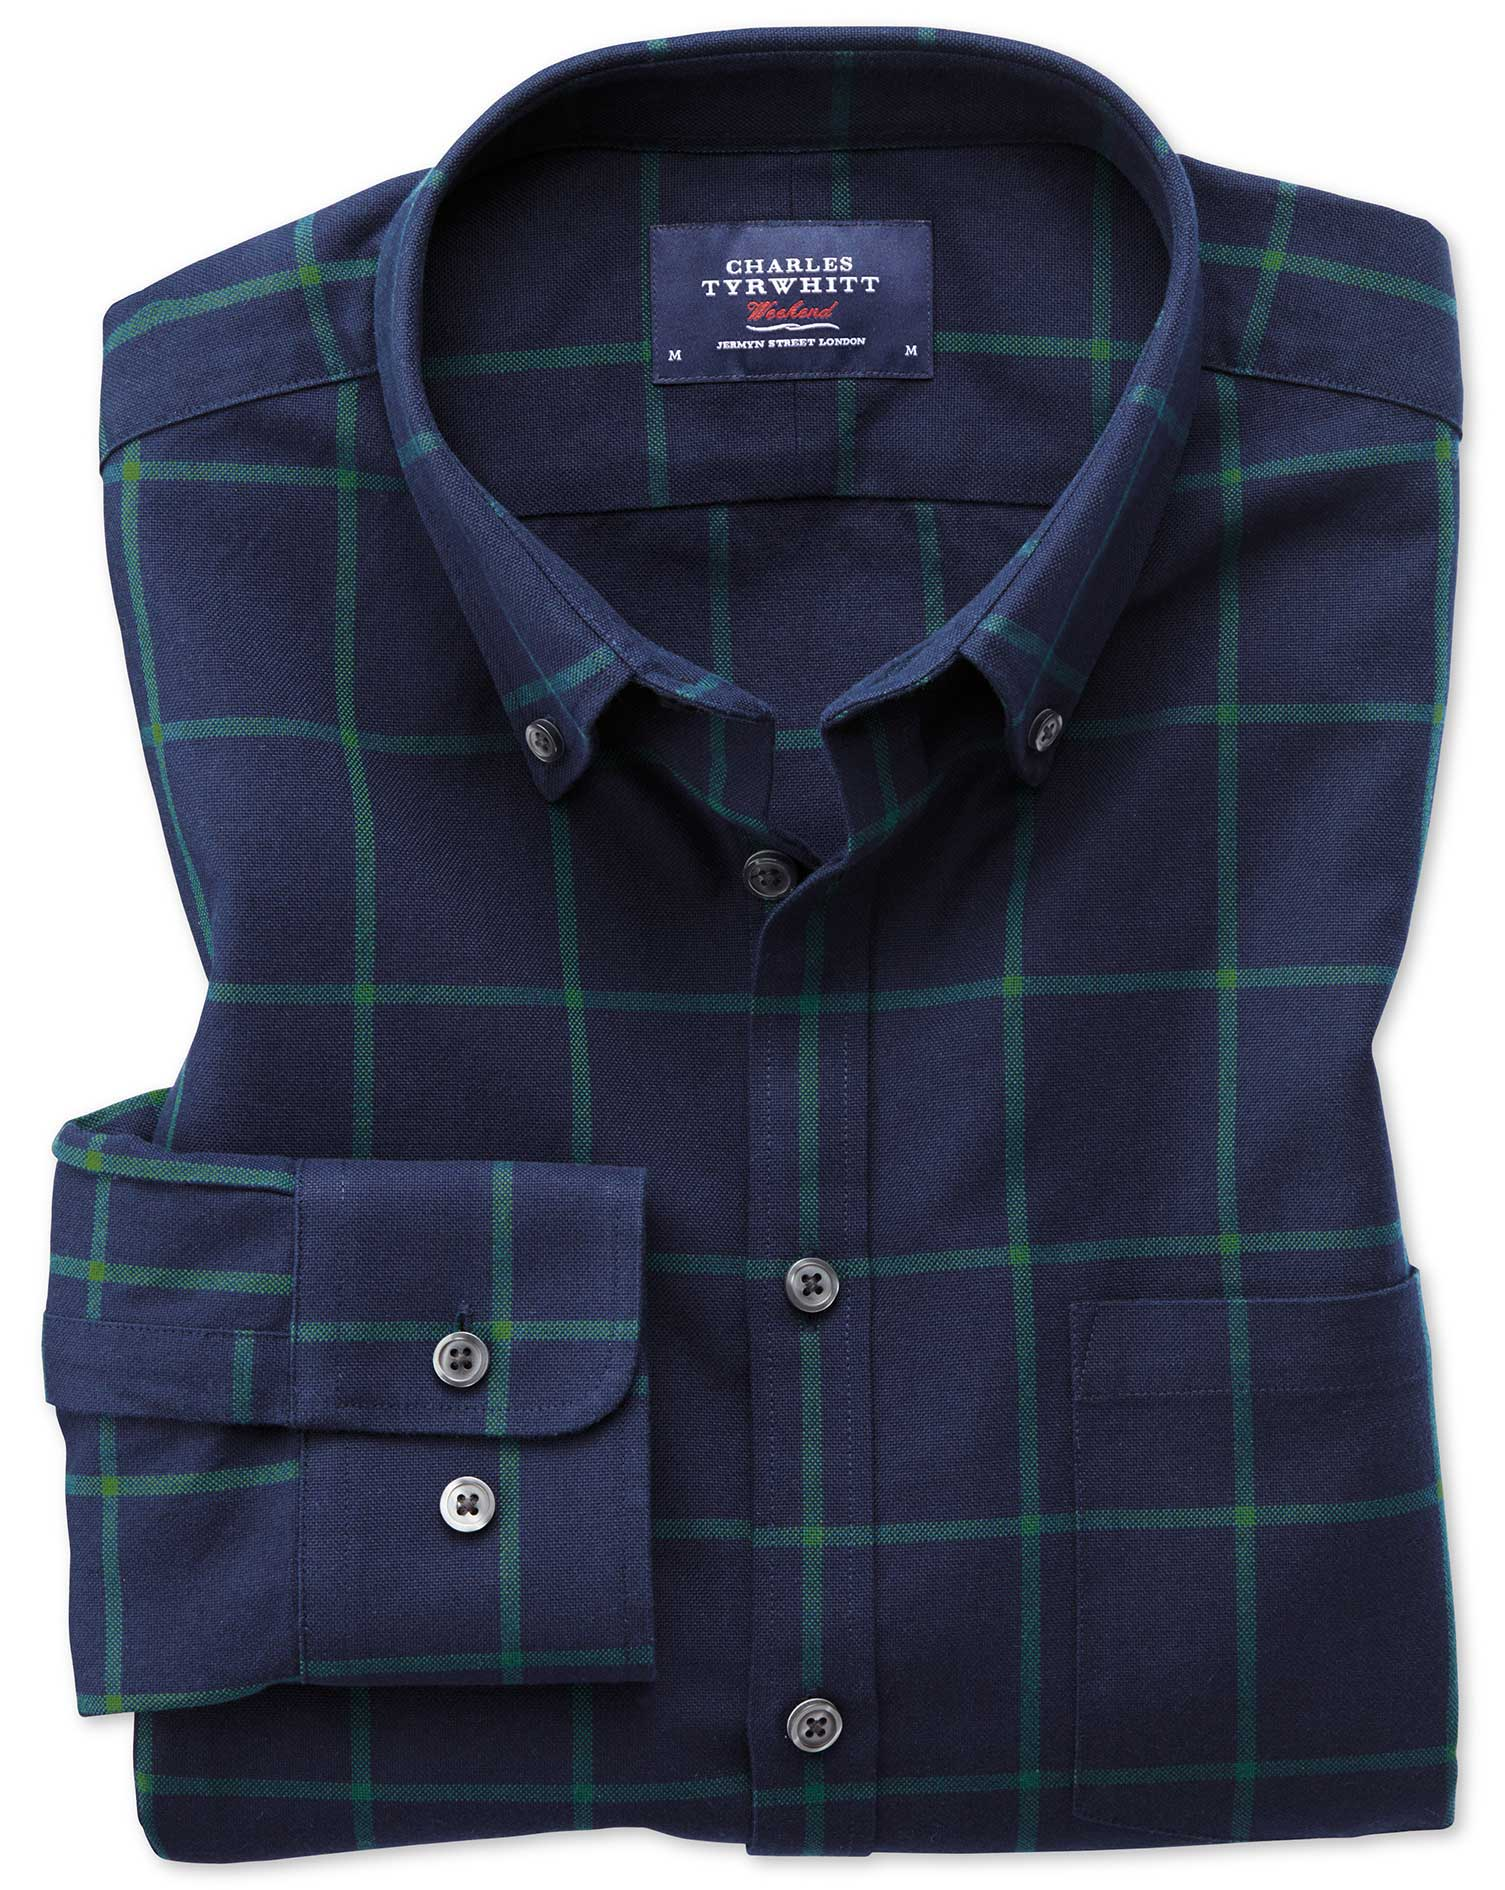 Classic Fit Button-Down Washed Oxford Navy Blue and Green Check Cotton Shirt Single Cuff Size XL by